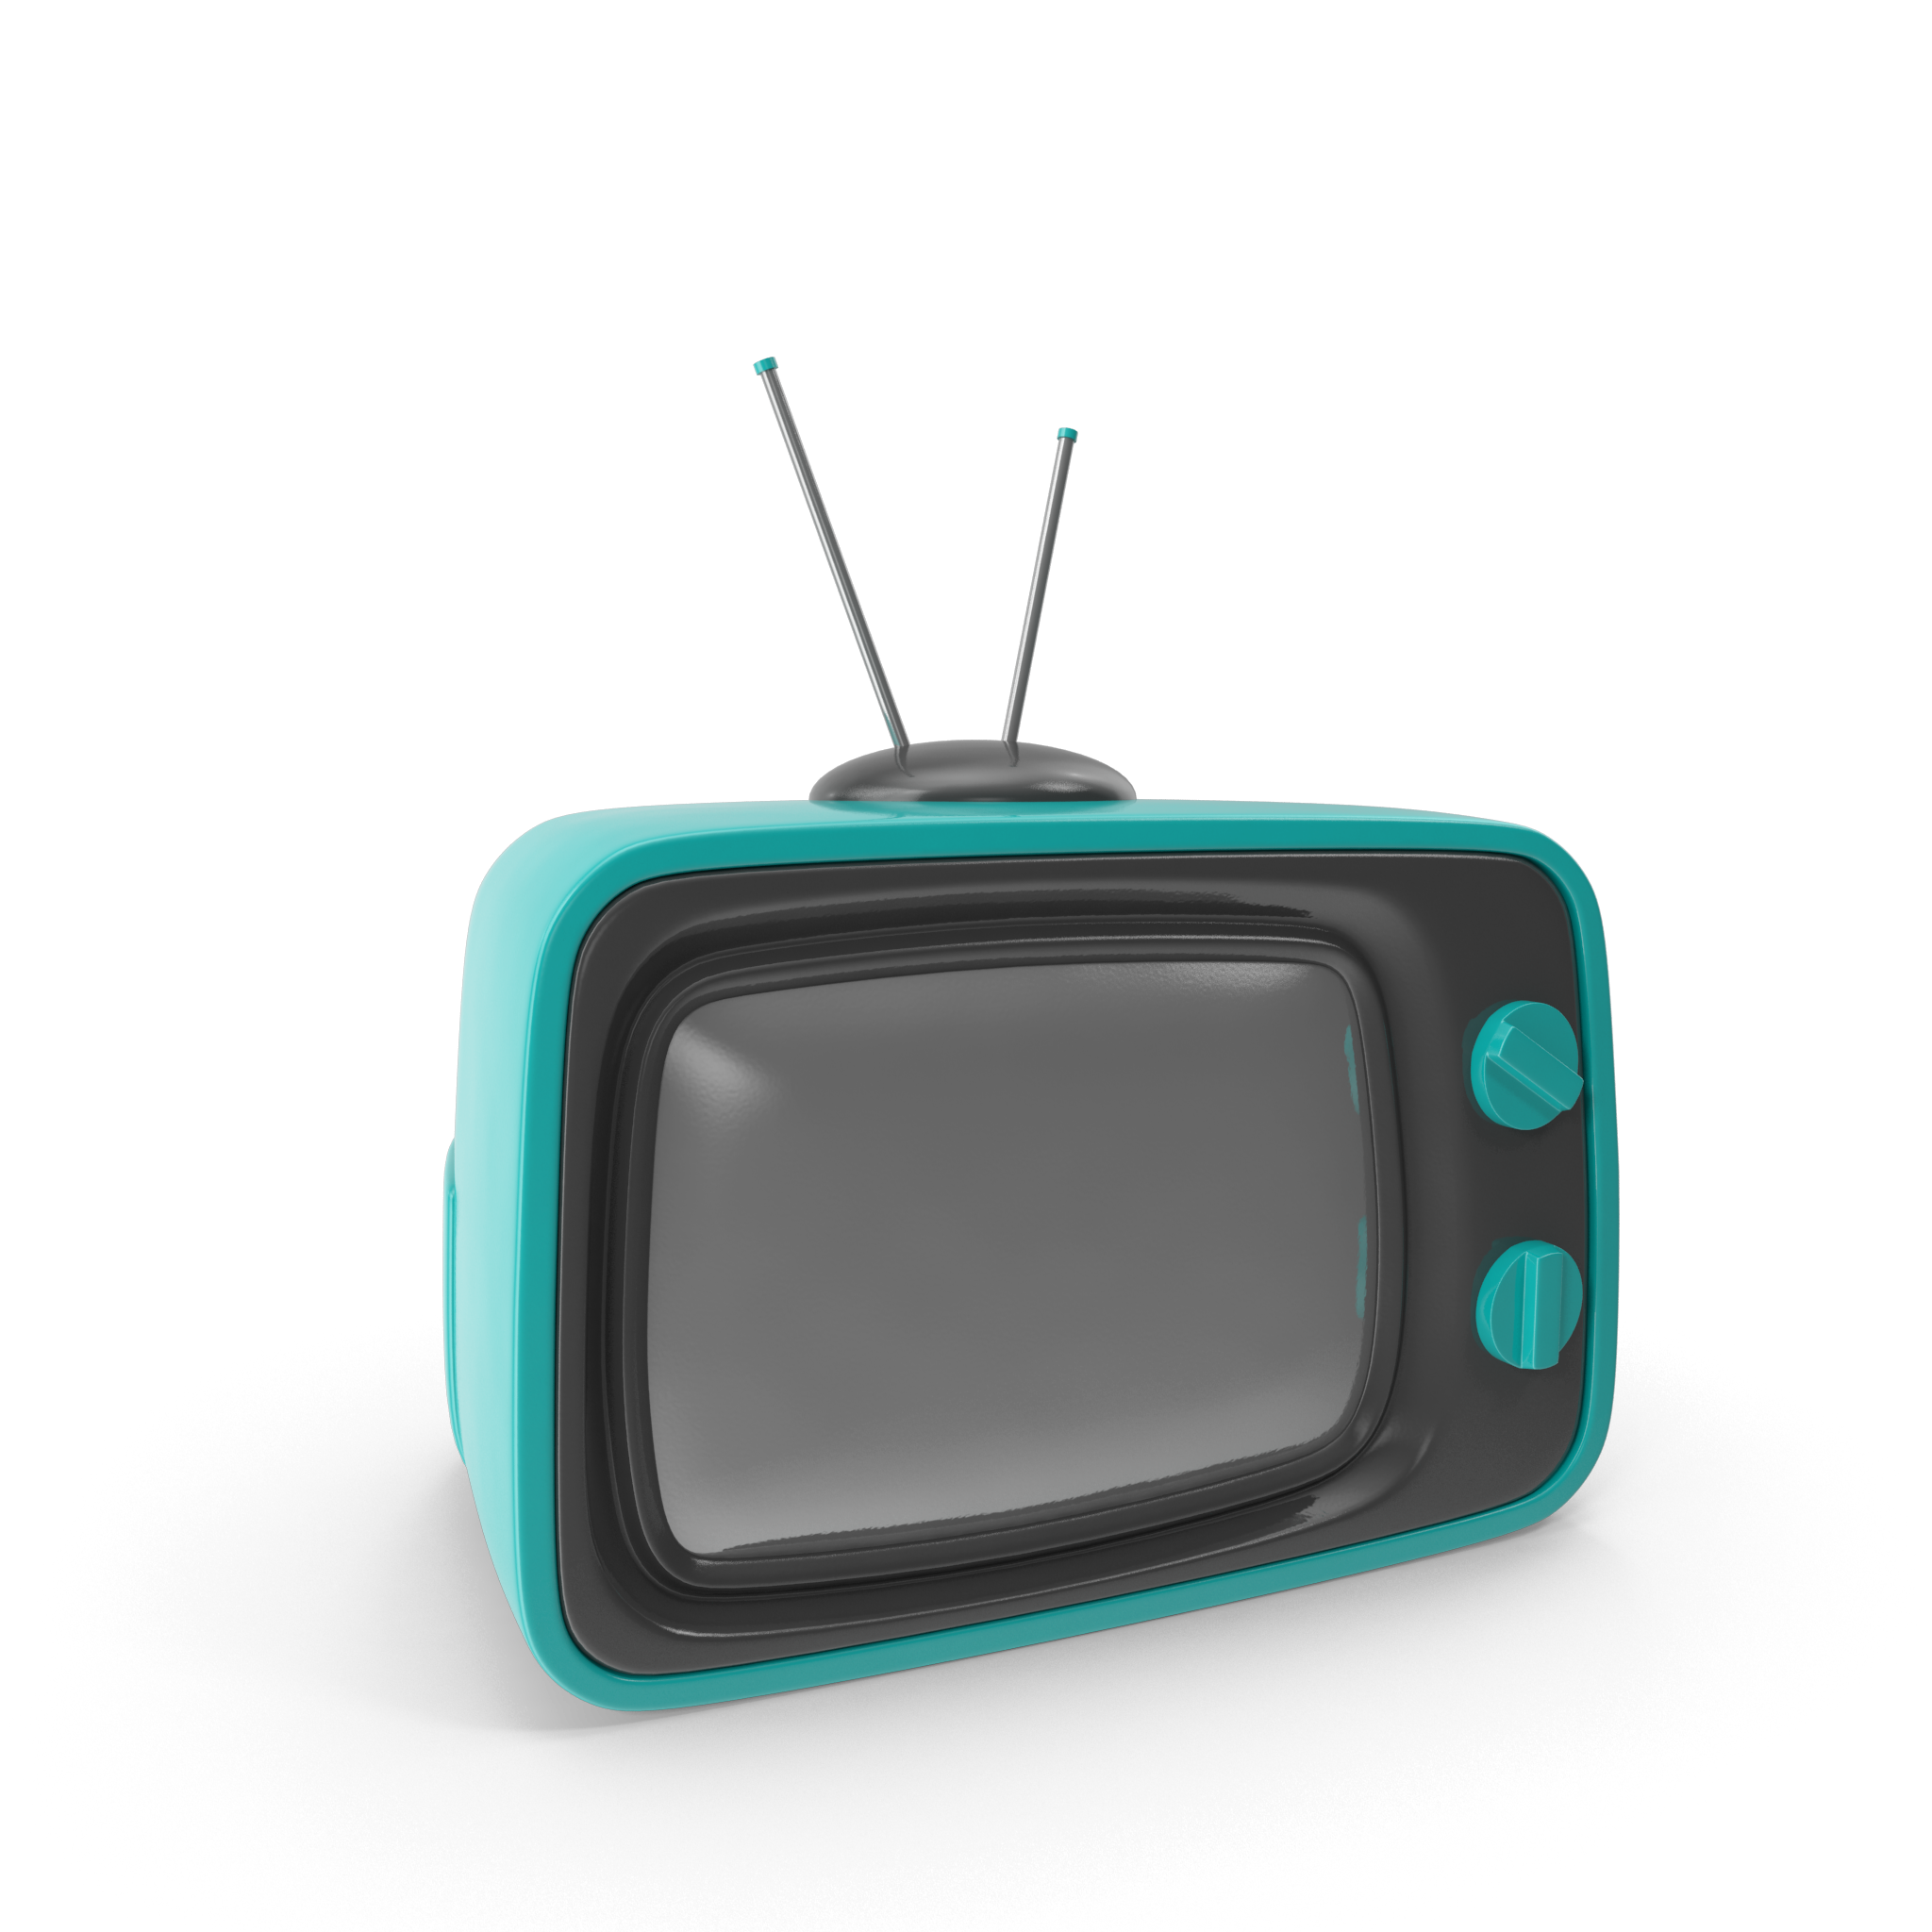 Blue Cartoon Television.H16.2k